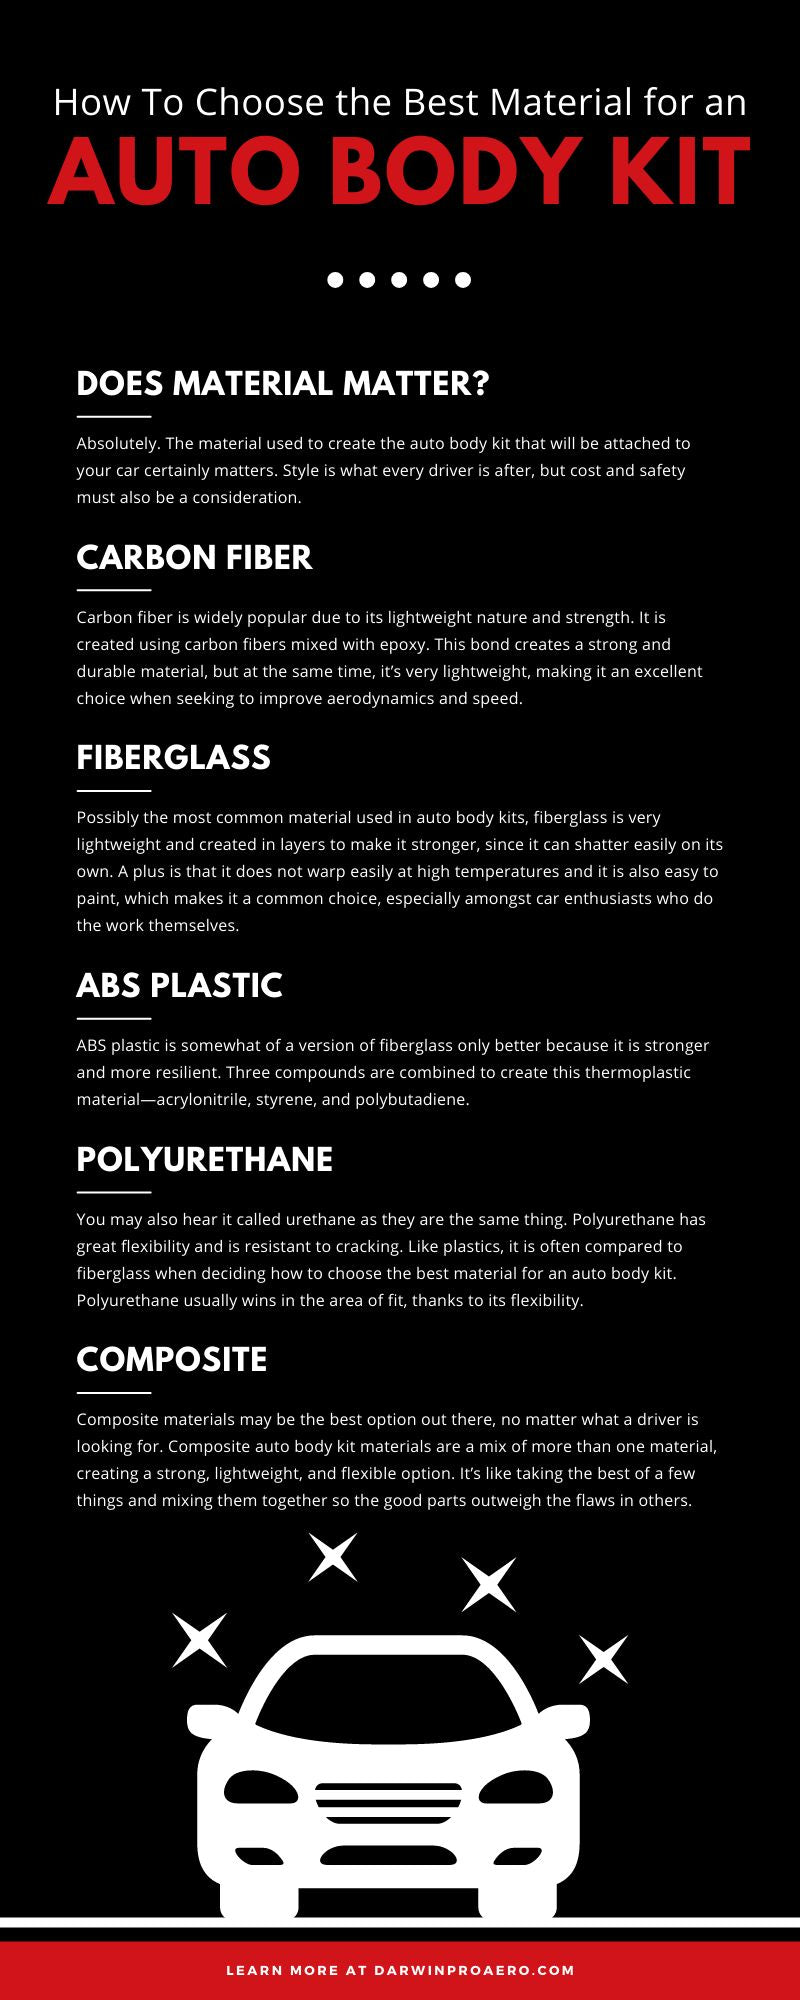 How To Choose the Best Material for an Auto Body Kit